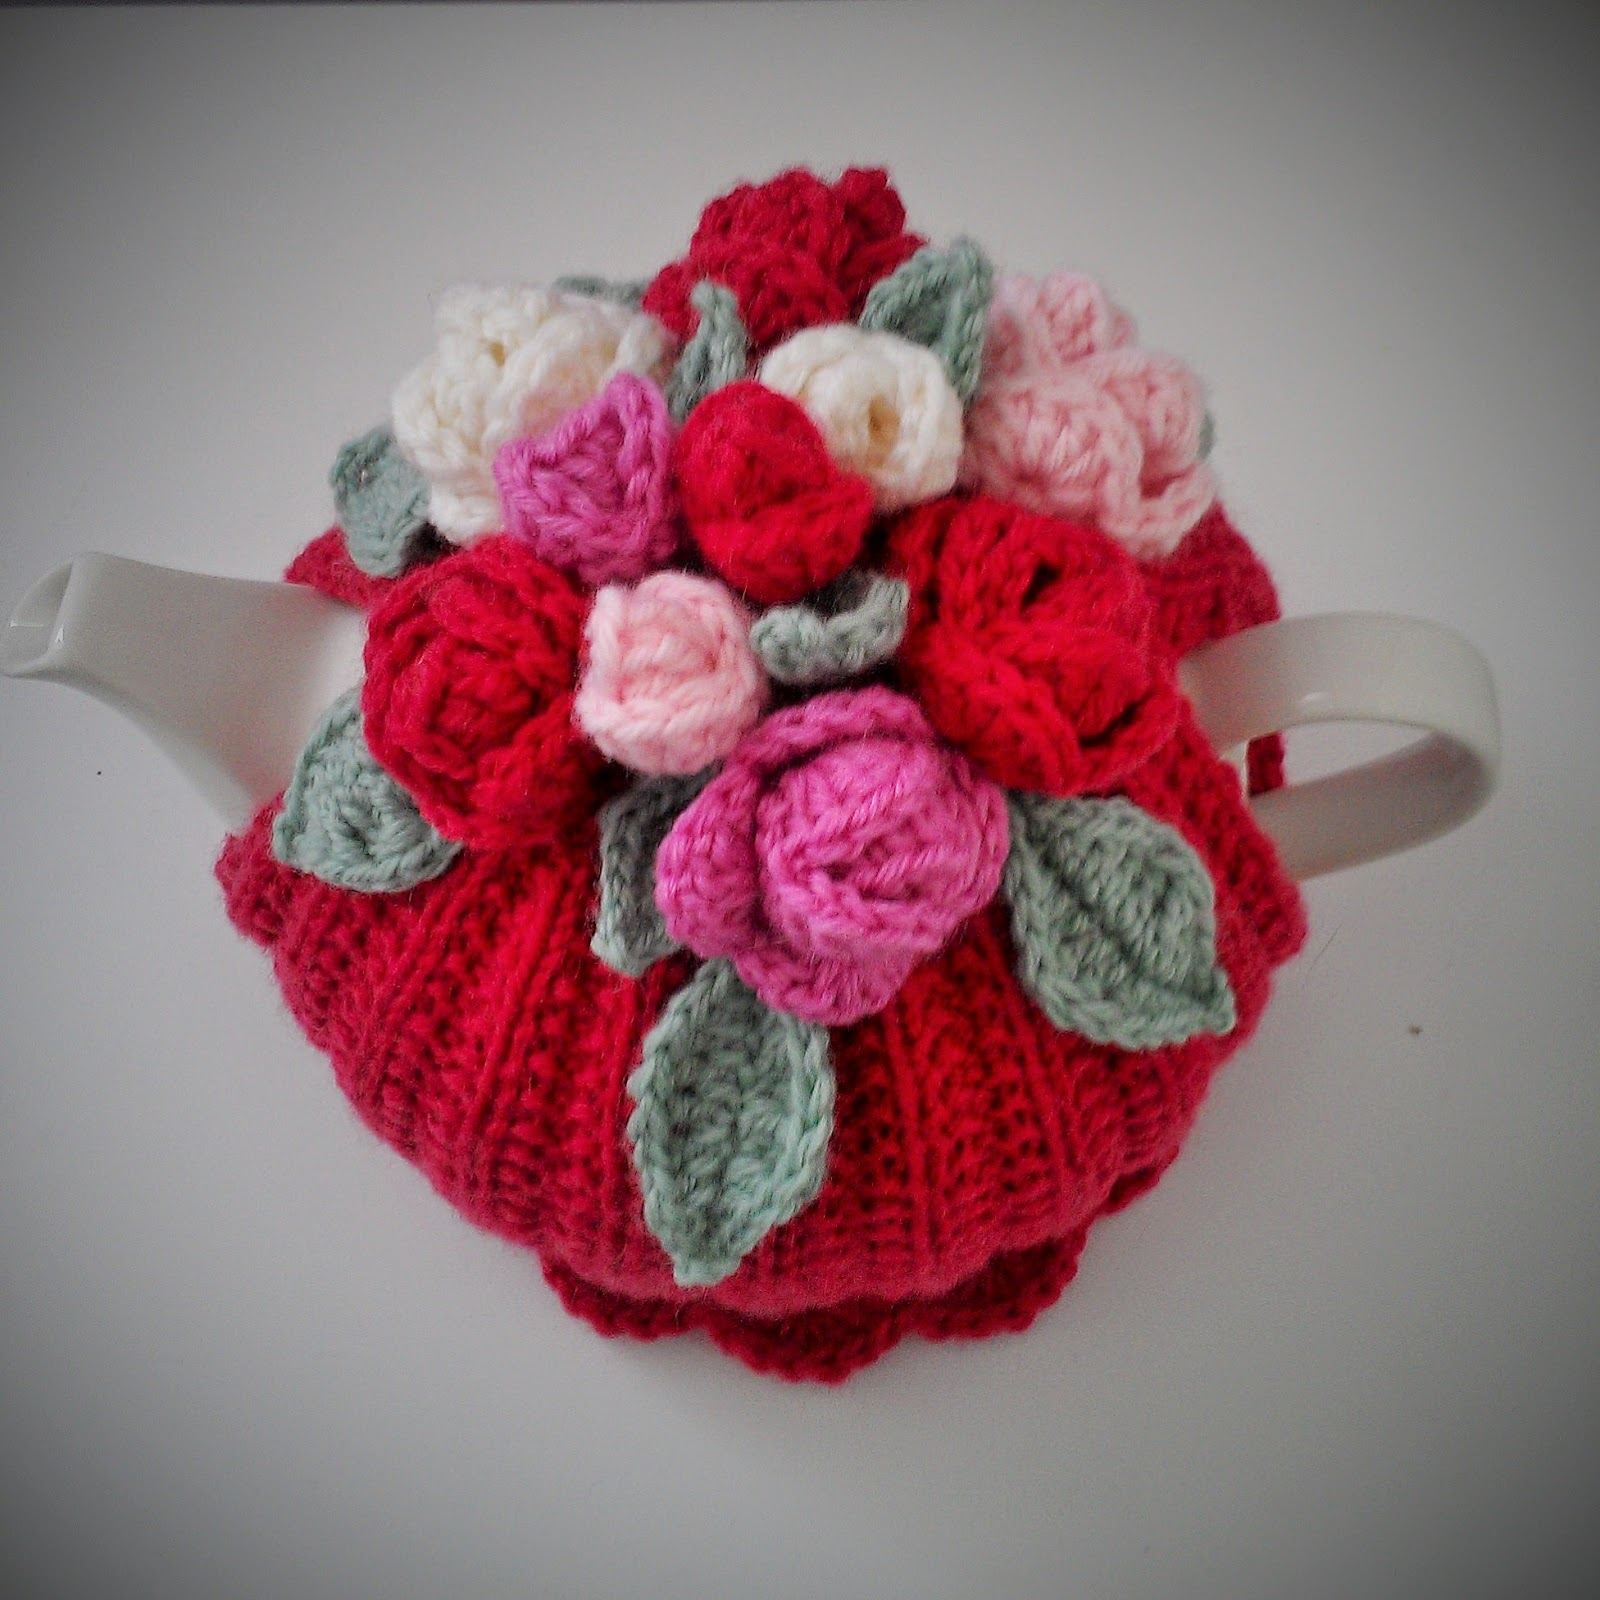 Knitting Pattern For Yoda Tea Cosy : Craft a cure for cancer free tea cosy patterns: Rose tea cosy